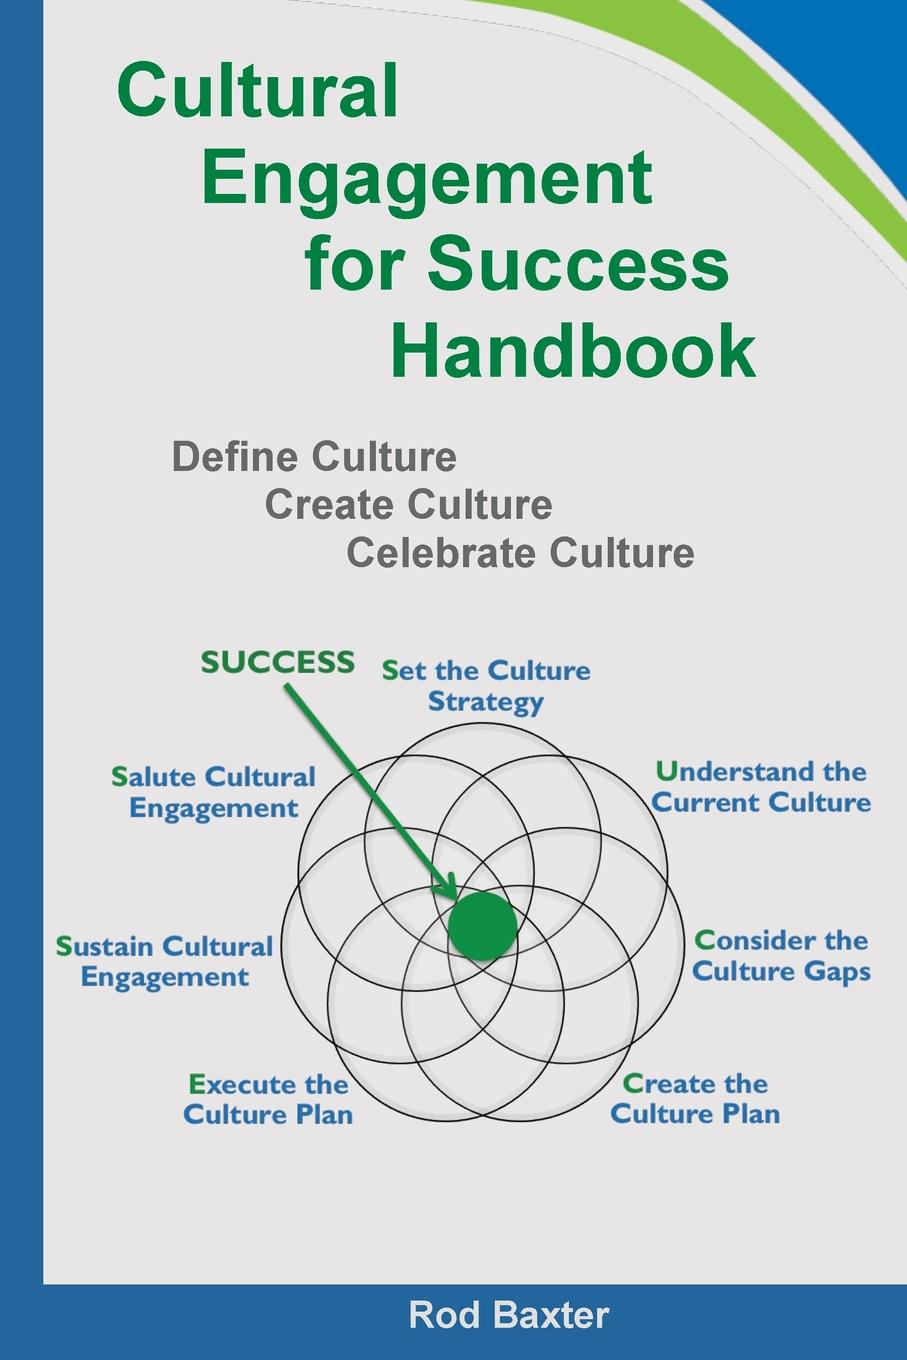 Cultural Engagement for Success Handbook. Define Culture - Create Culture - Celebrate Culture This is a guide to cultural engagement for success designed...